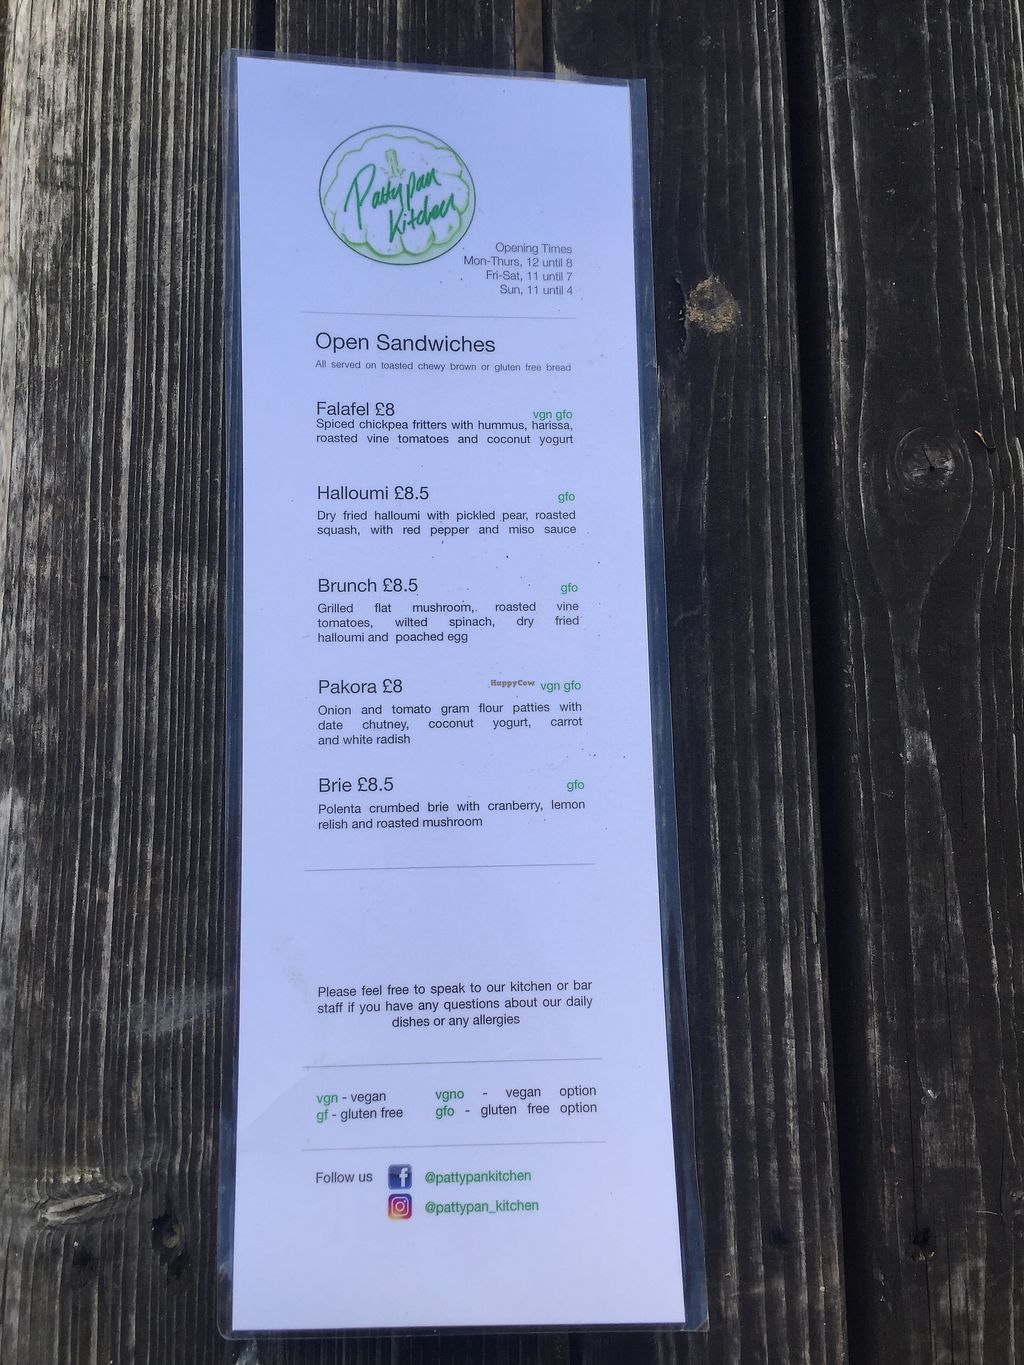 """Photo of Pattypan Kitchen at The Victory Pub  by <a href=""""/members/profile/greedyveganmama"""">greedyveganmama</a> <br/>Menu <br/> September 24, 2017  - <a href='/contact/abuse/image/100701/307700'>Report</a>"""